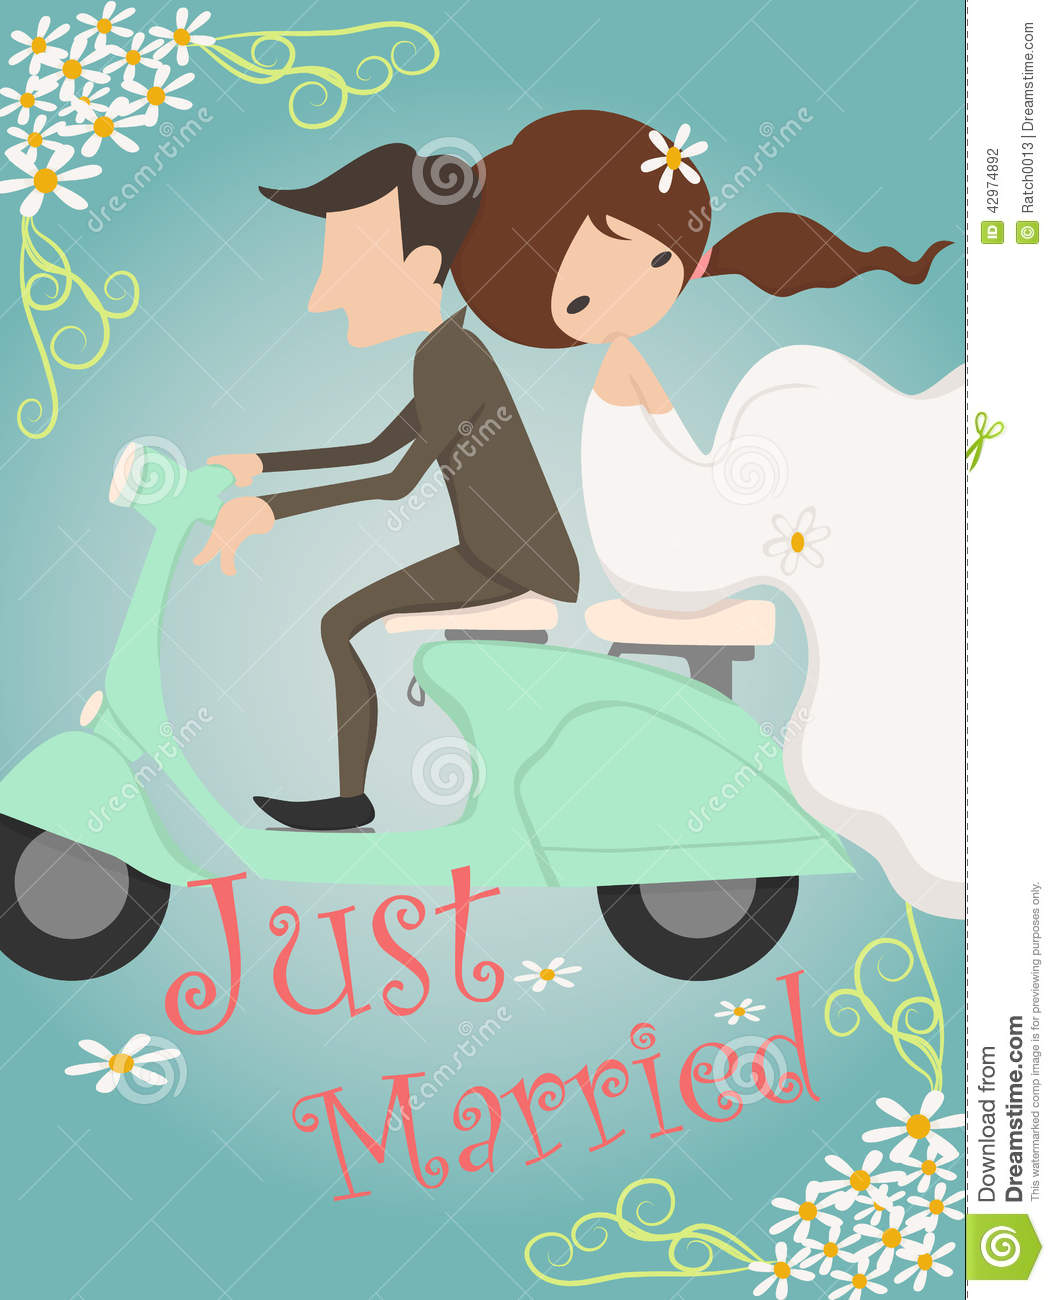 Just Married Wedding Invitation Card Design Stock Vector ...